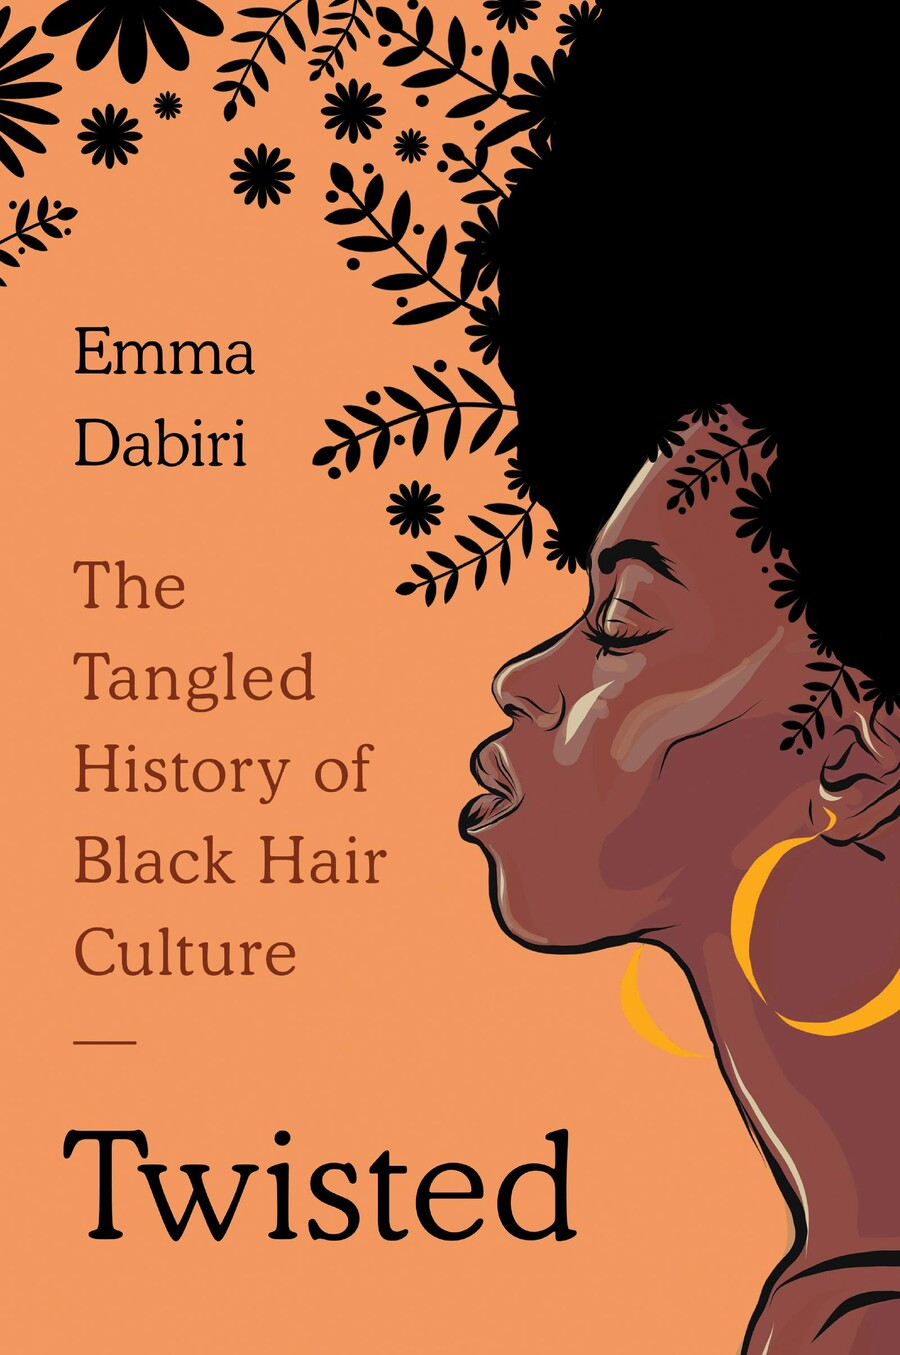 The book cover of Twisted: The Tangled History of Black Hair Culture by Emma Dabiri, which features a Black woman with natural hair looking to the side.